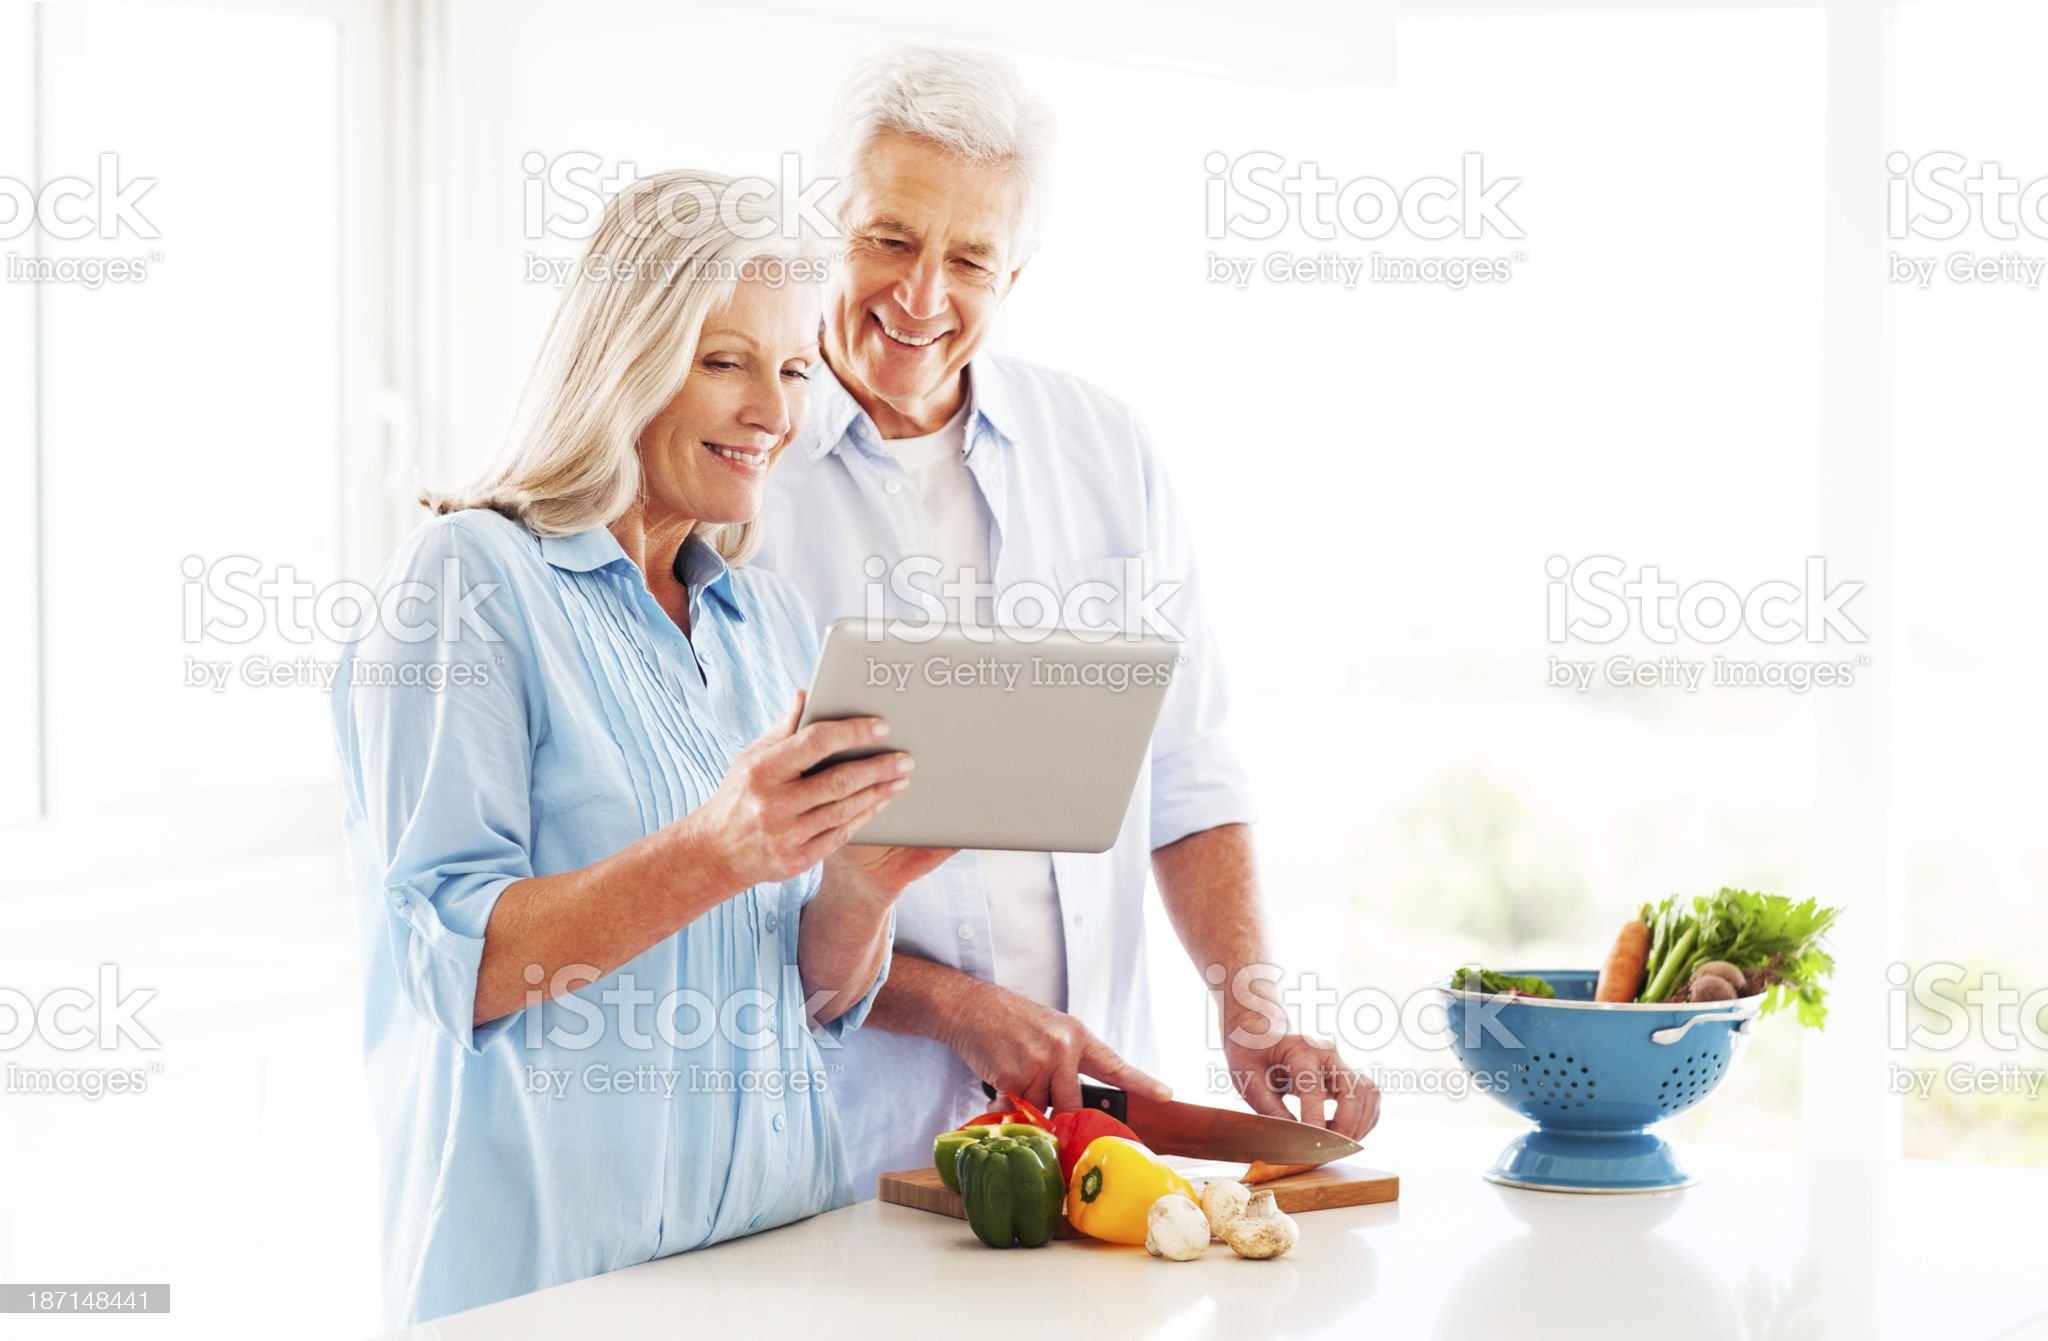 Couple Using Tablet Computer In Kitchen royalty-free stock photo